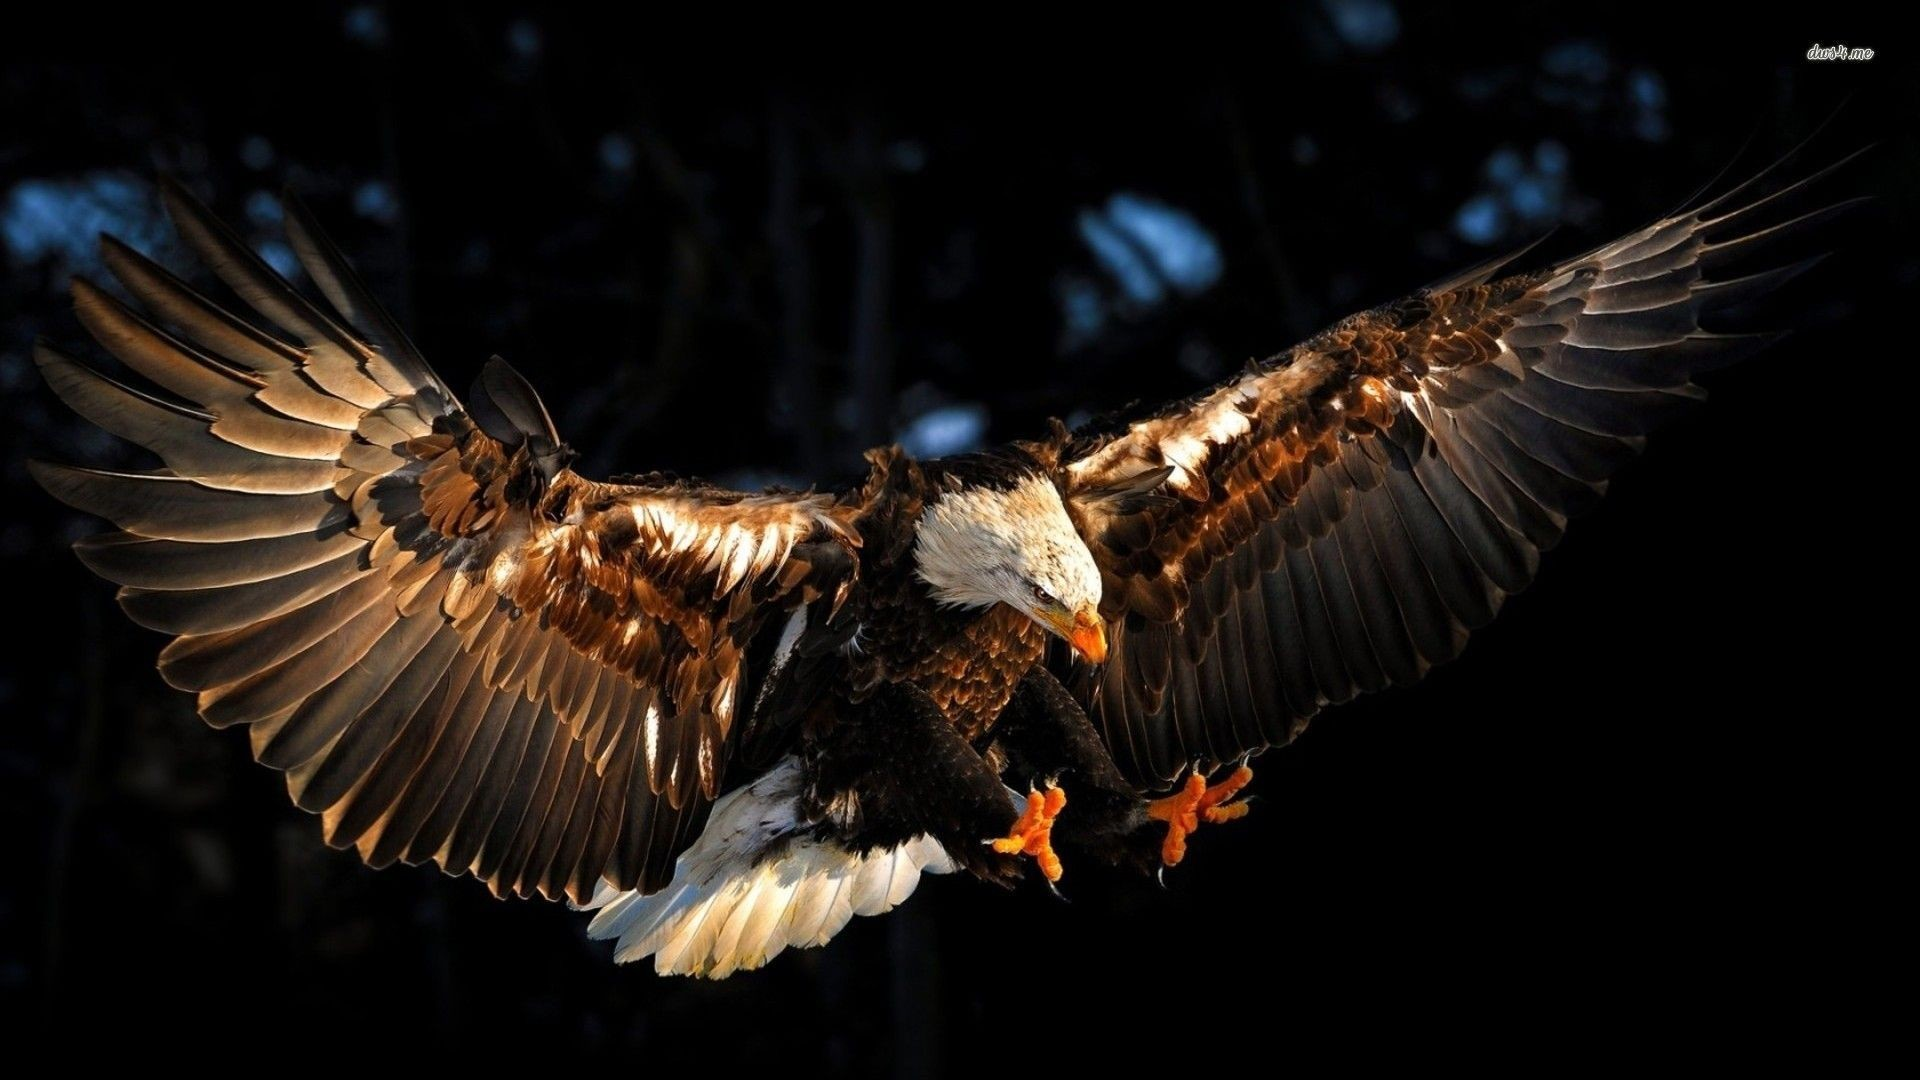 1920x1080 Interesting Bald Eagle Wallpapers, HDQ Bald Eagle Images Collection:  2553501,